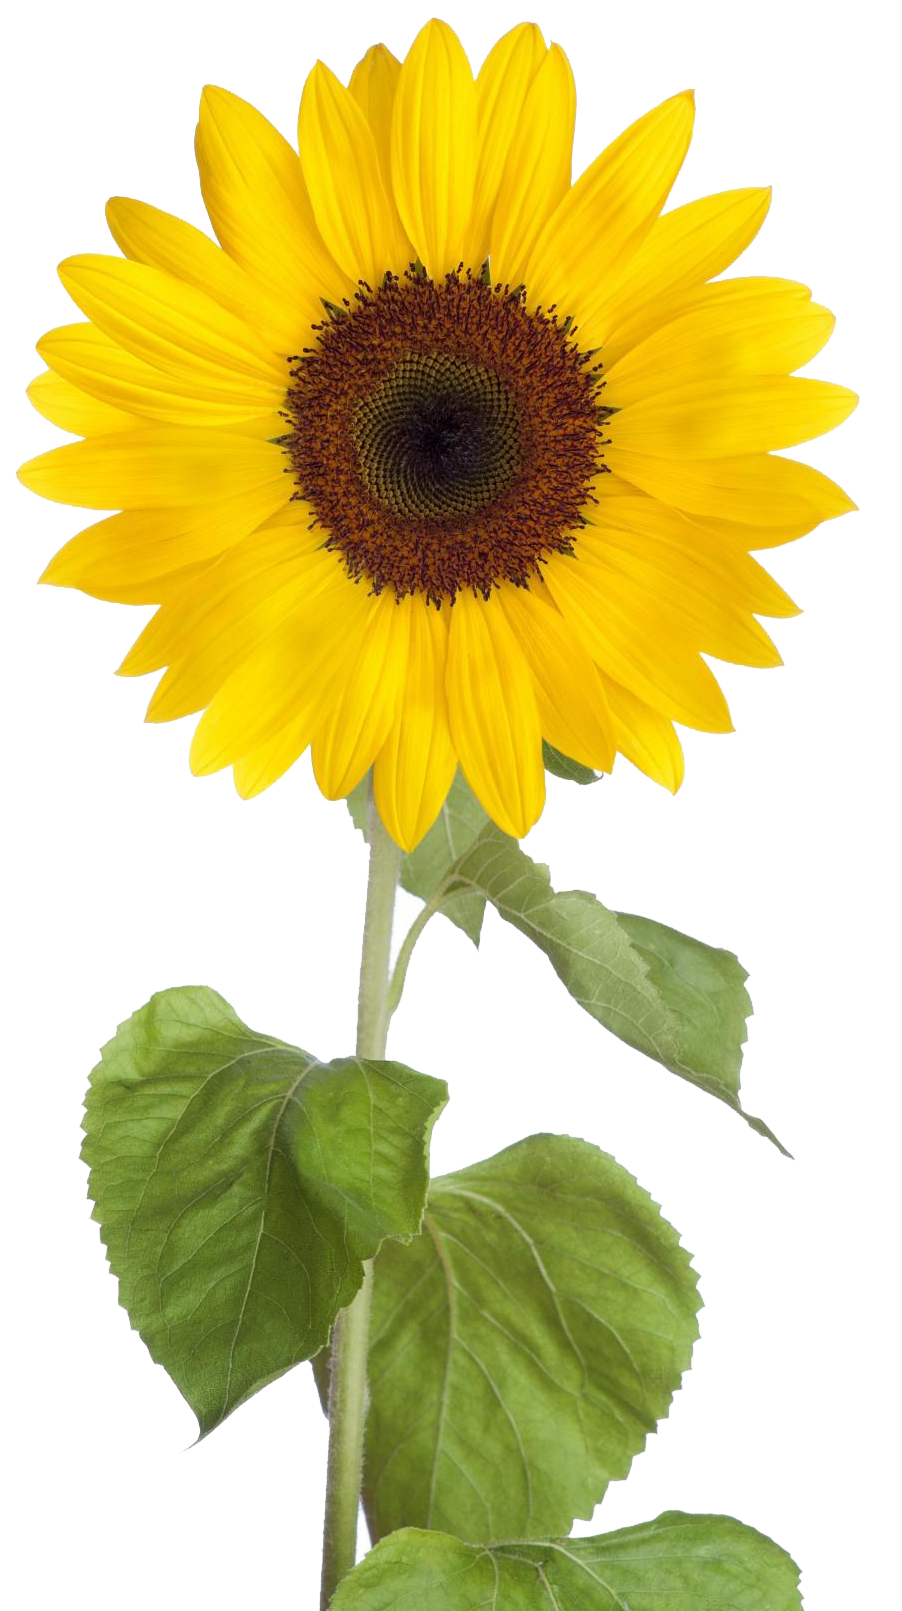 Download Sunflower Free Download HQ PNG Image | FreePNGImg